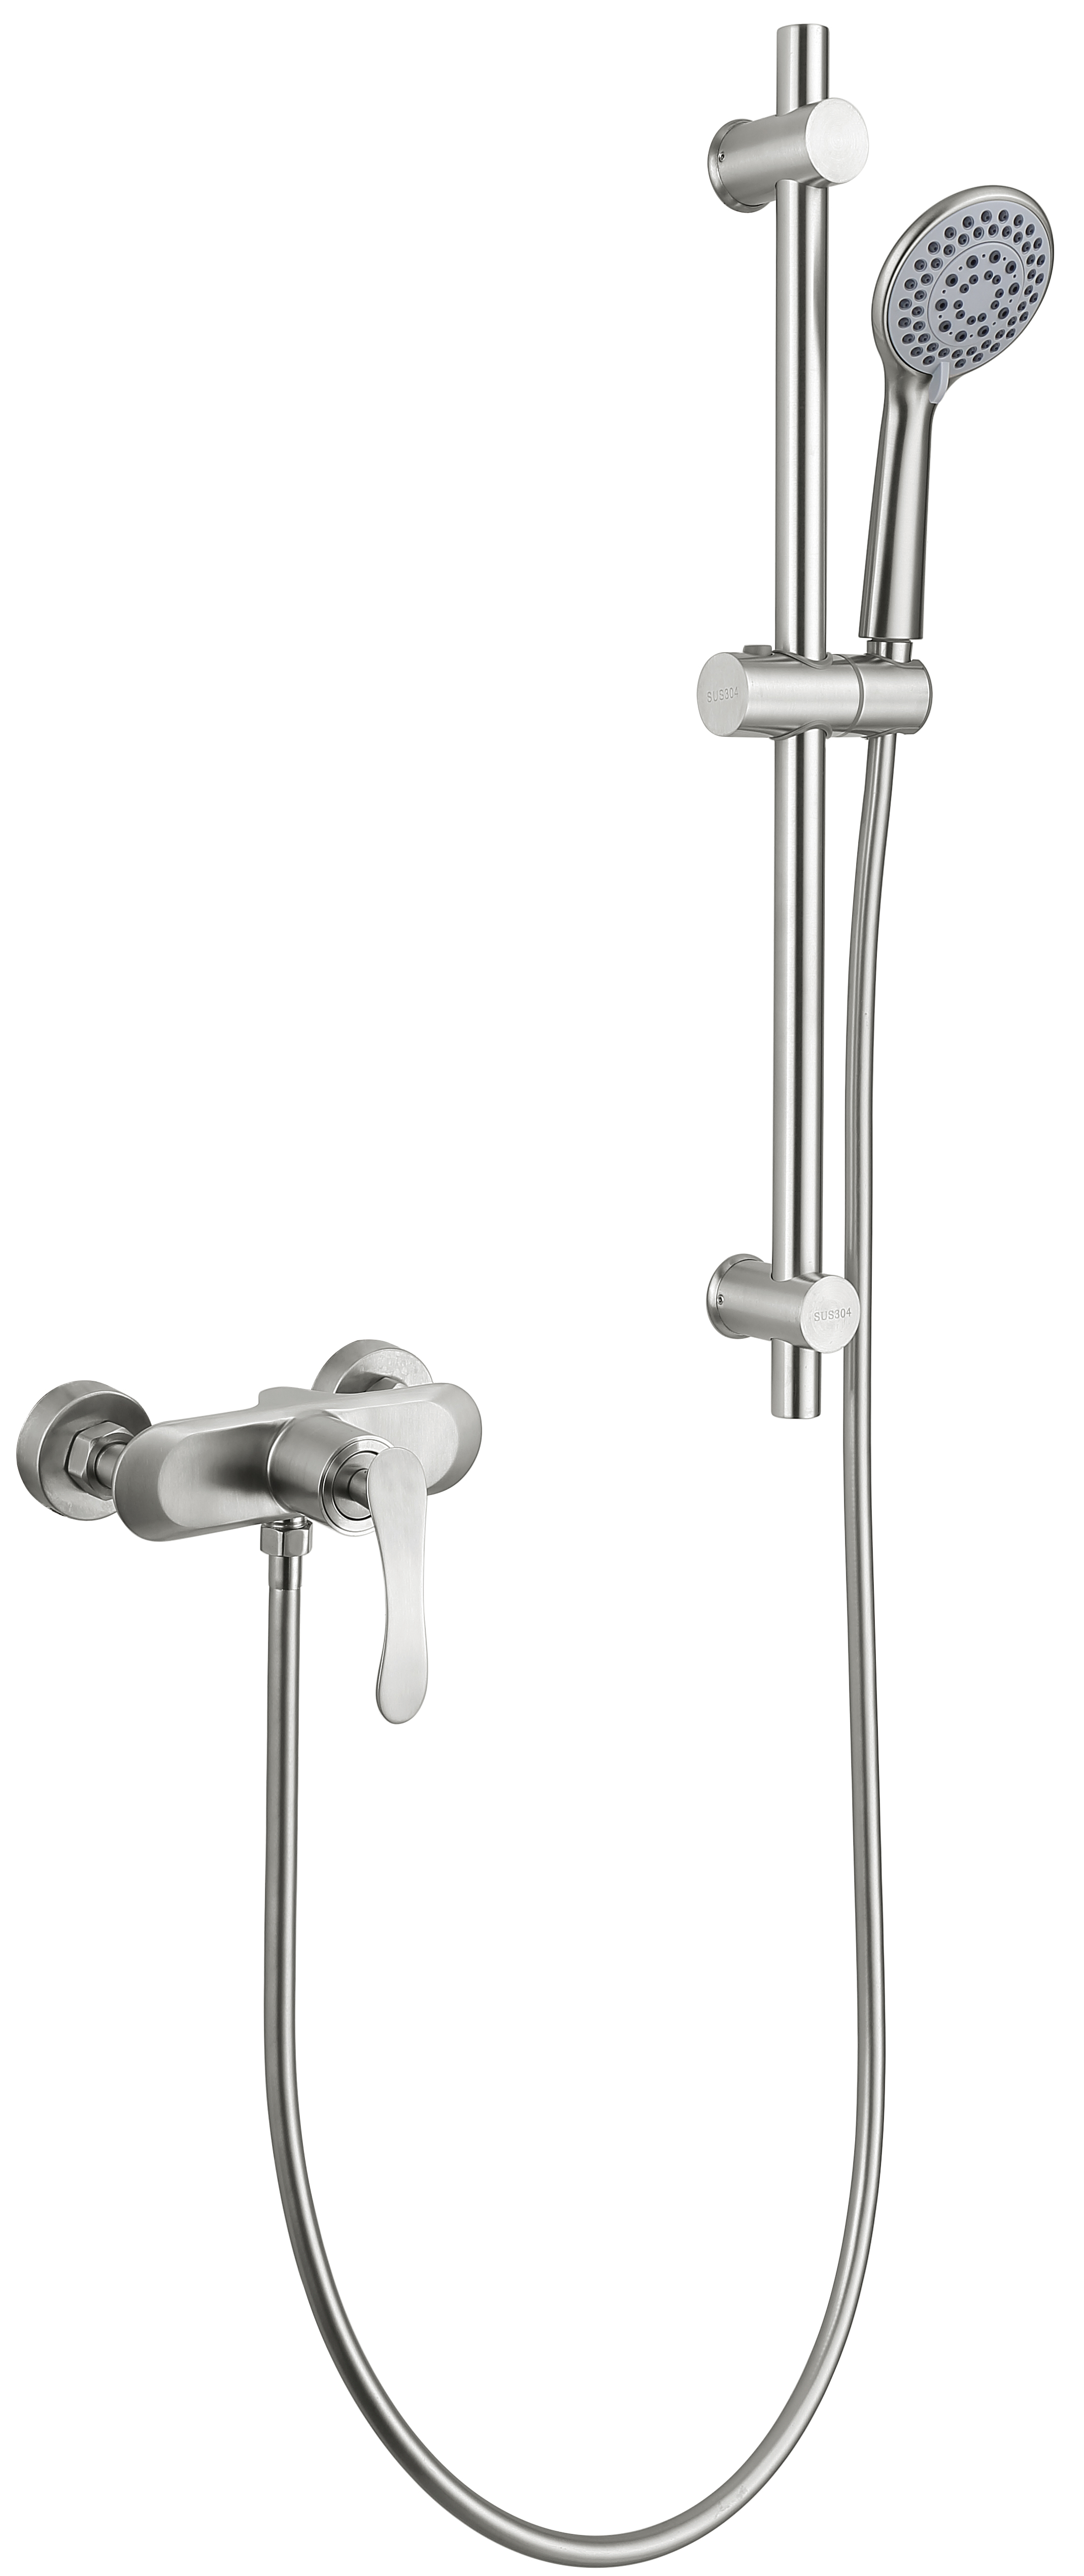 304 Shower Faucet Set Manufacturers, 304 Shower Faucet Set Factory, Supply 304 Shower Faucet Set